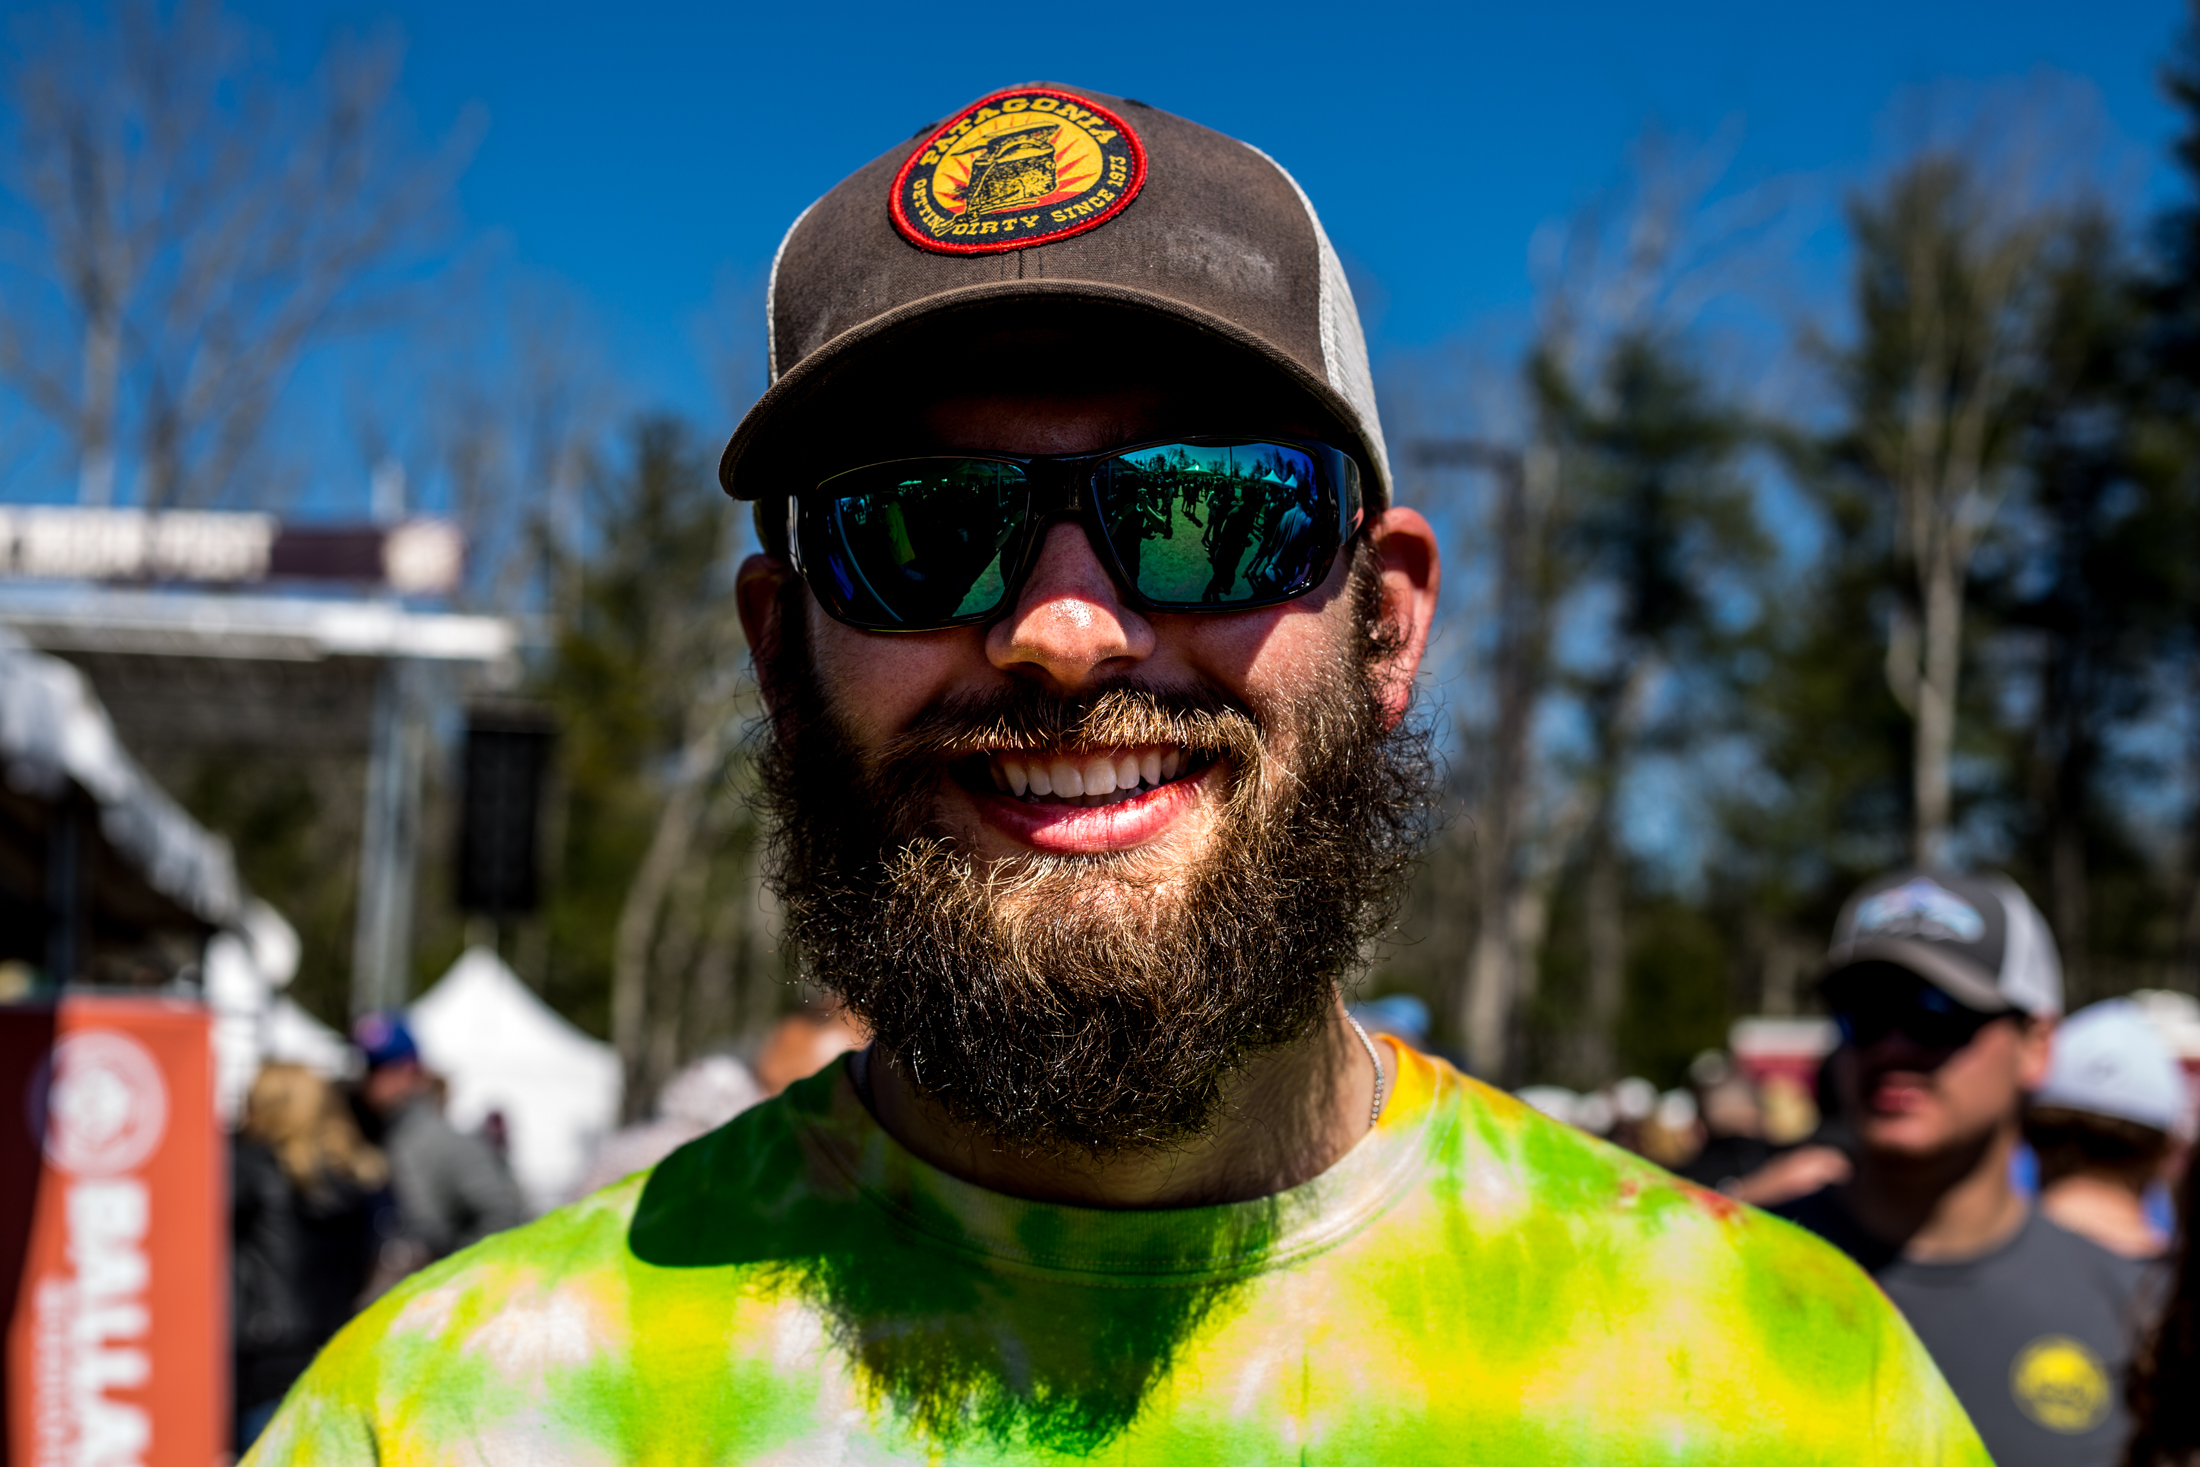 """Beard""  Friendly guy at the Burly Beer Festival - Sierra Nevada - Mills River, NC"